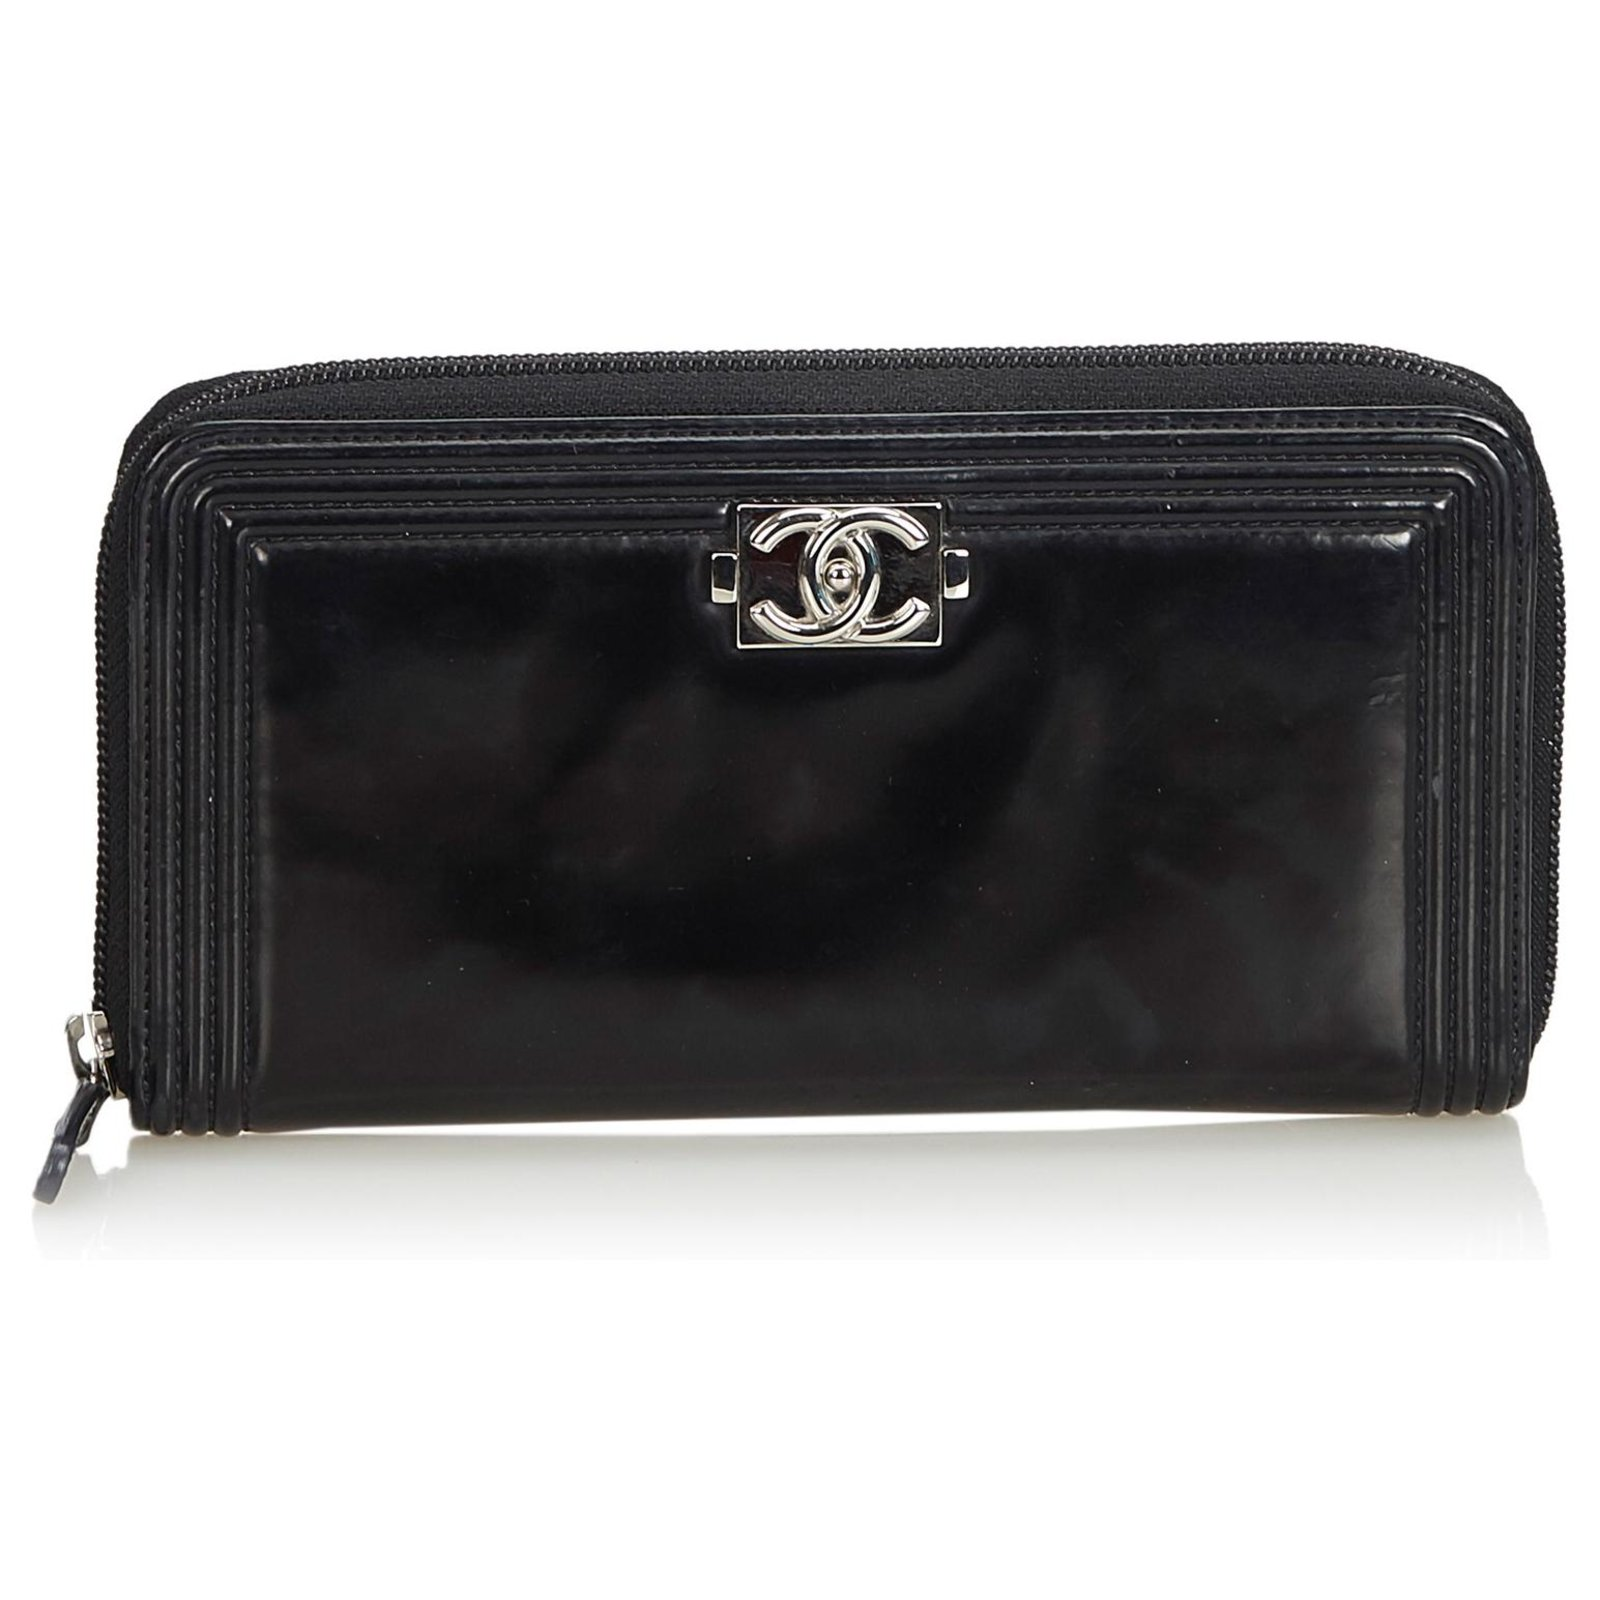 1dbcd2db02e9 Chanel Chanel Black Patent Leather Boy Long Wallet Purses, wallets, cases  Leather,Patent